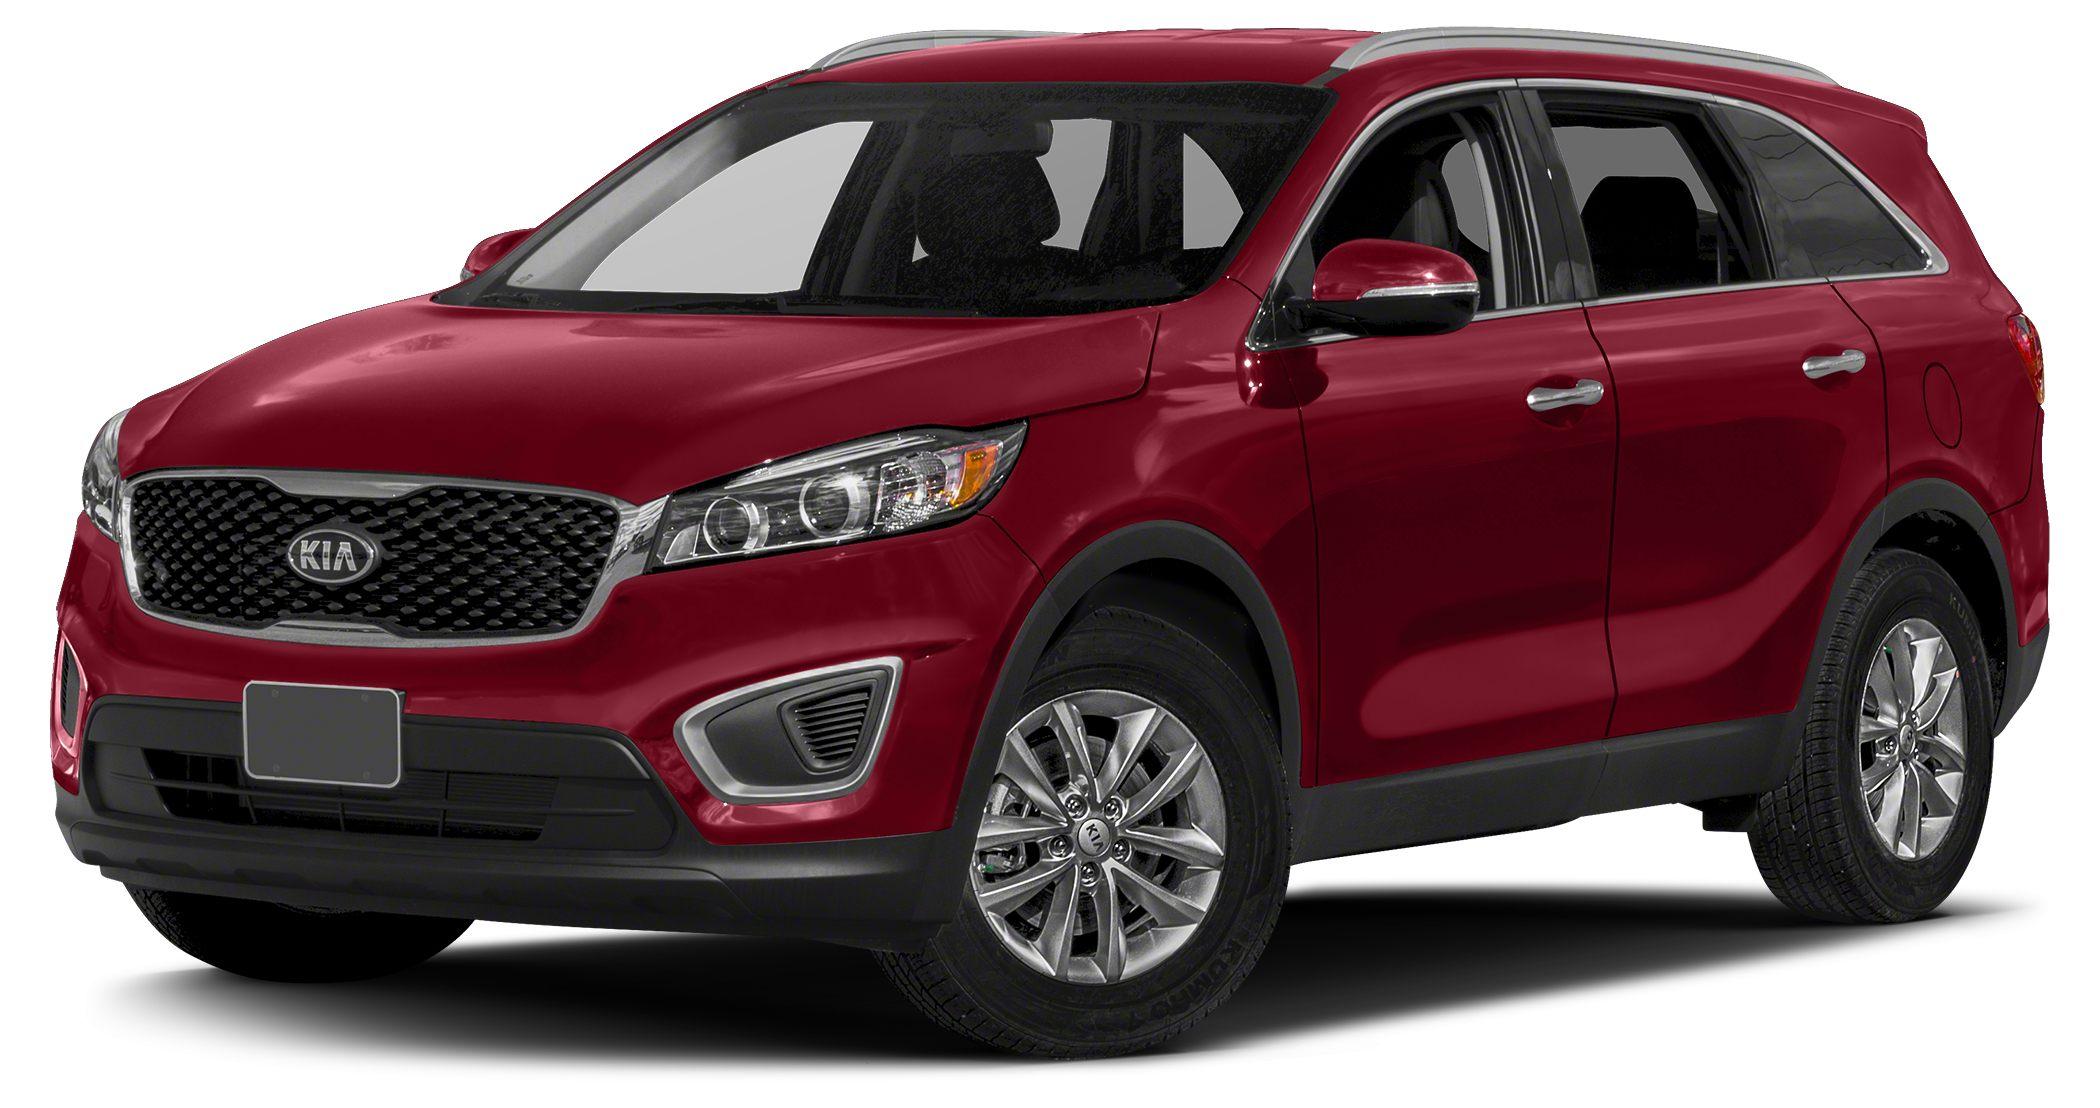 2018 Kia Sorento 24 LX Miles 3Color Remington Red Stock K8472 VIN 5XYPGDA39JG367890